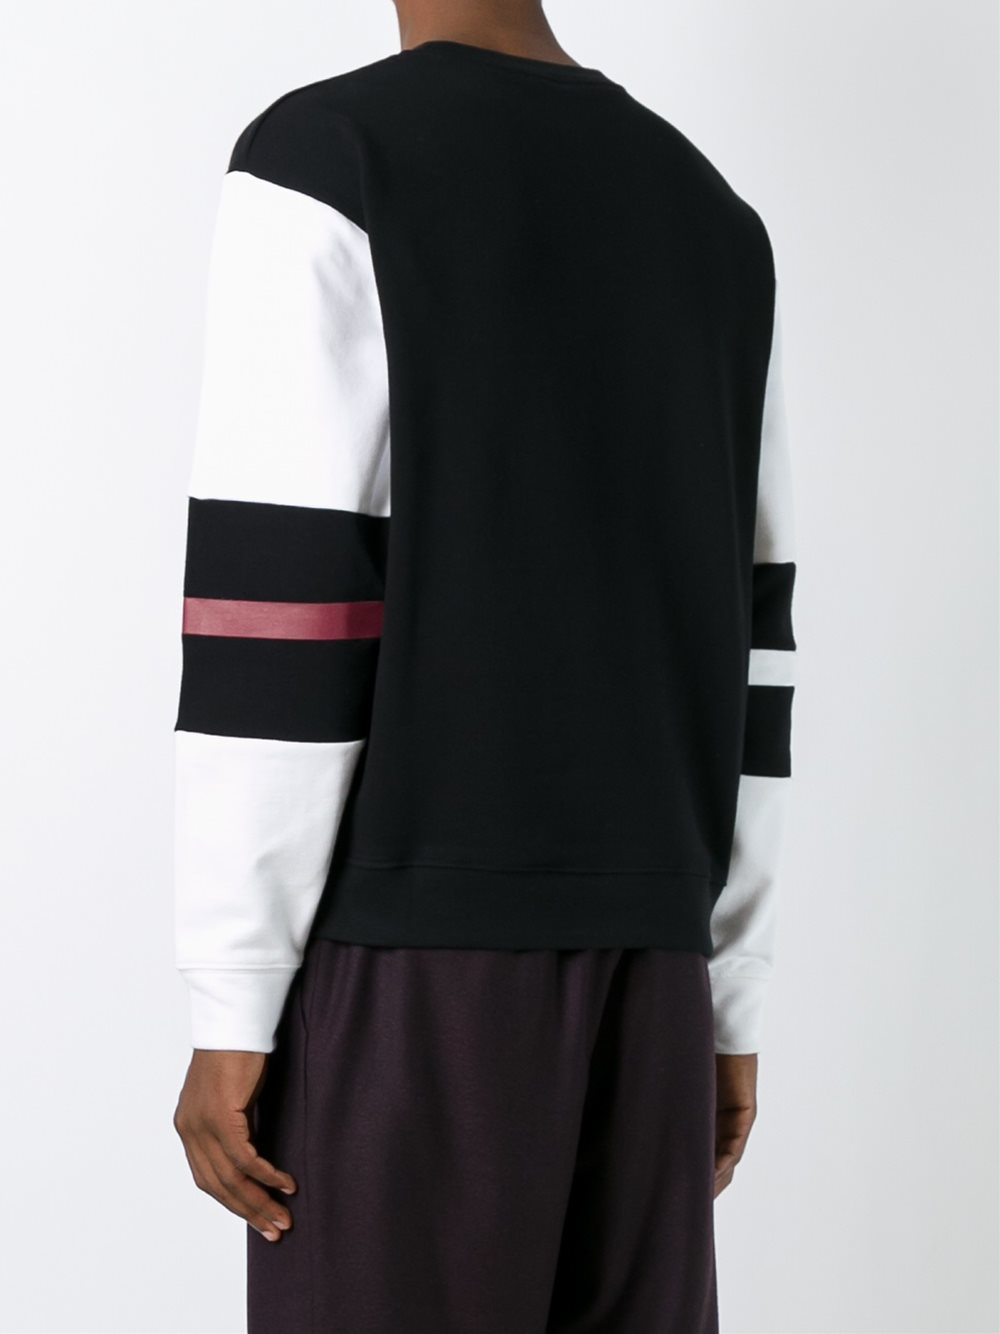 Mcq red line print sweatshirt in black for men lyst for Red line printing